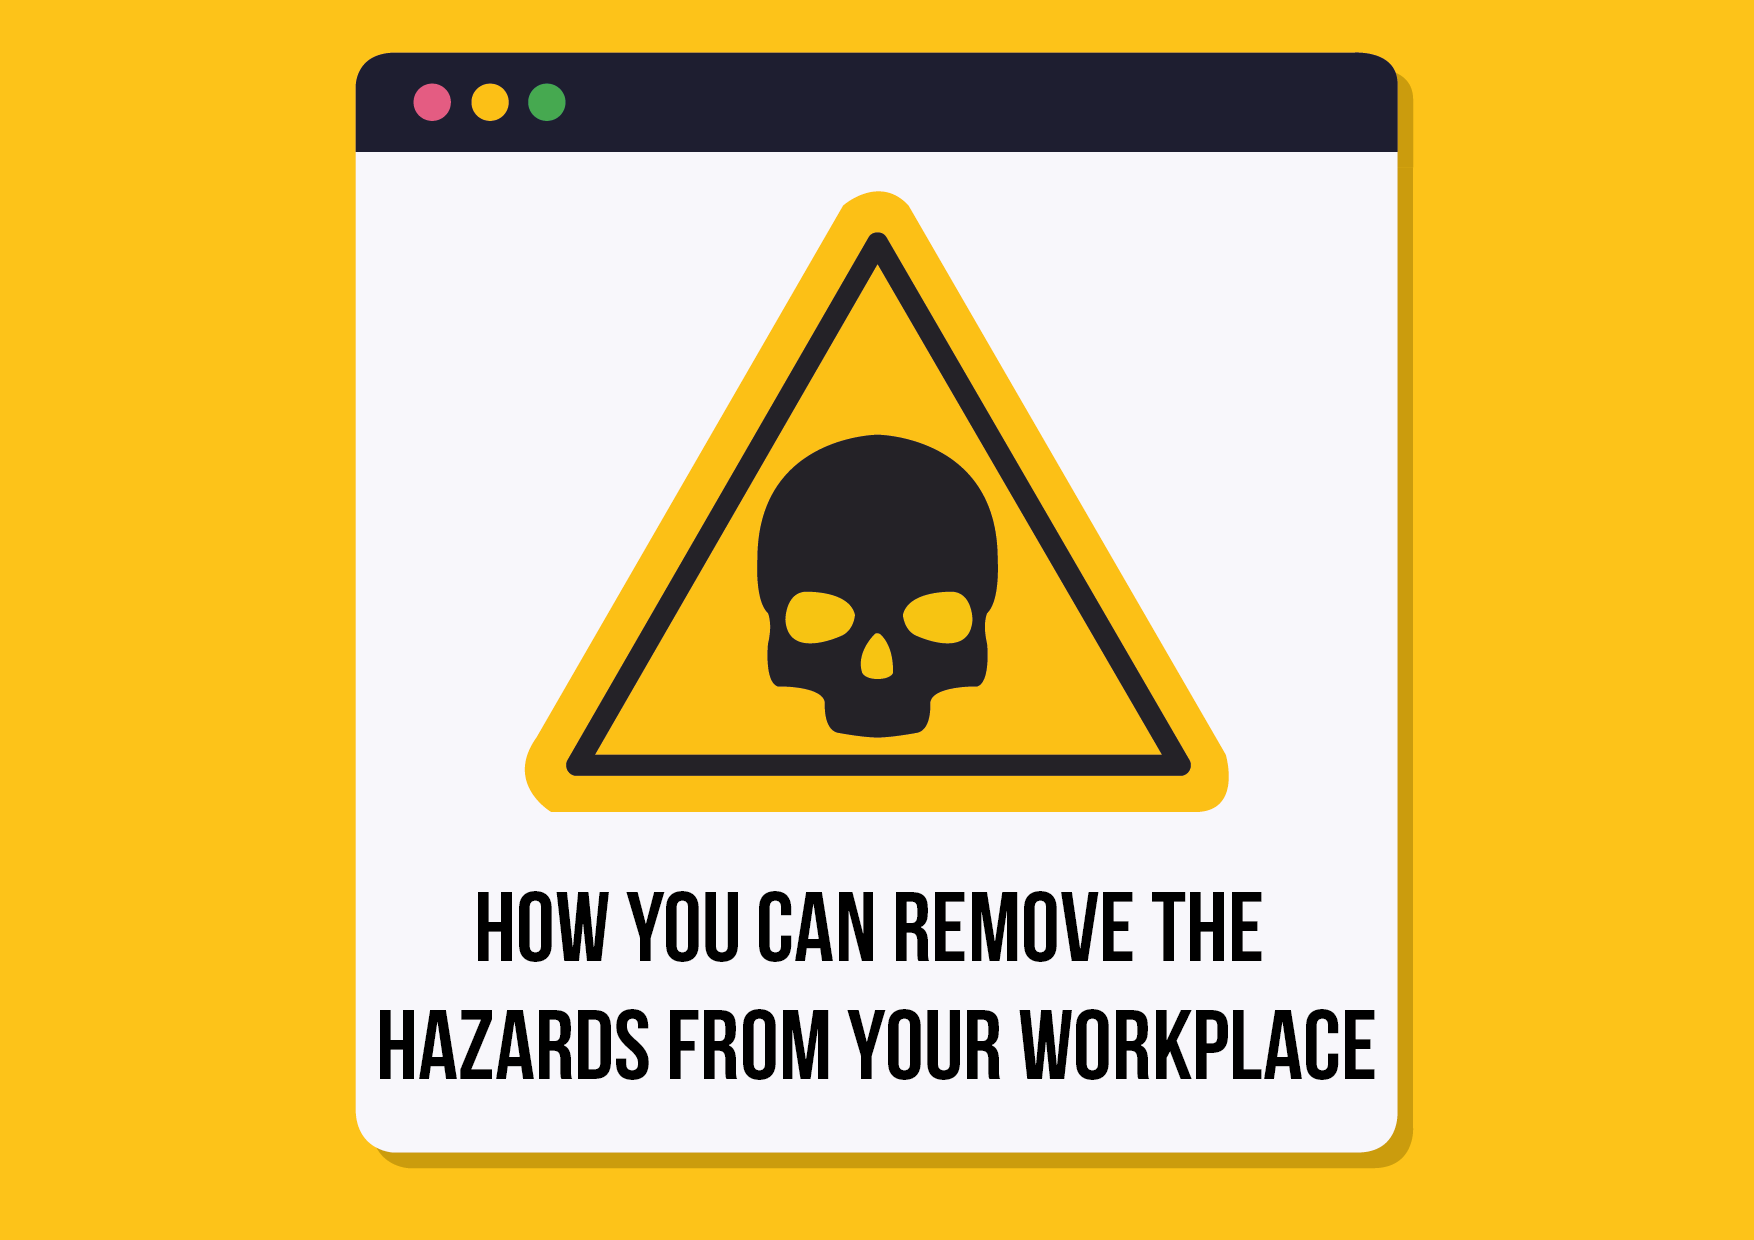 How You Can Remove The Hazards From Your Workplace